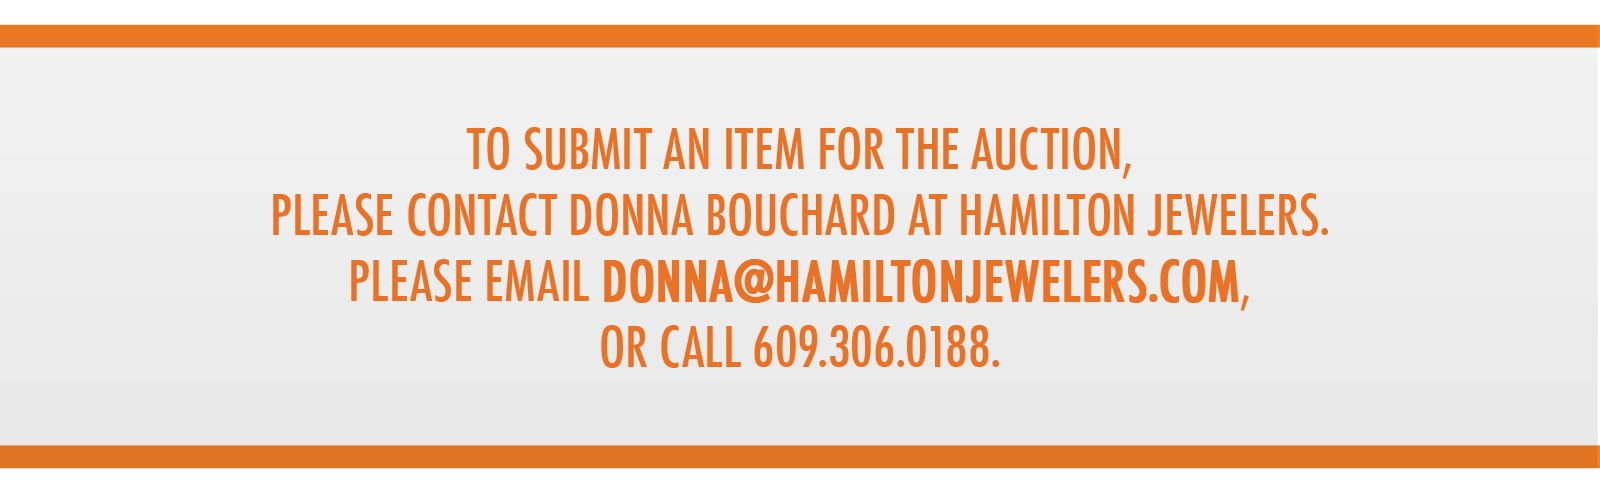 to submit an item for auction